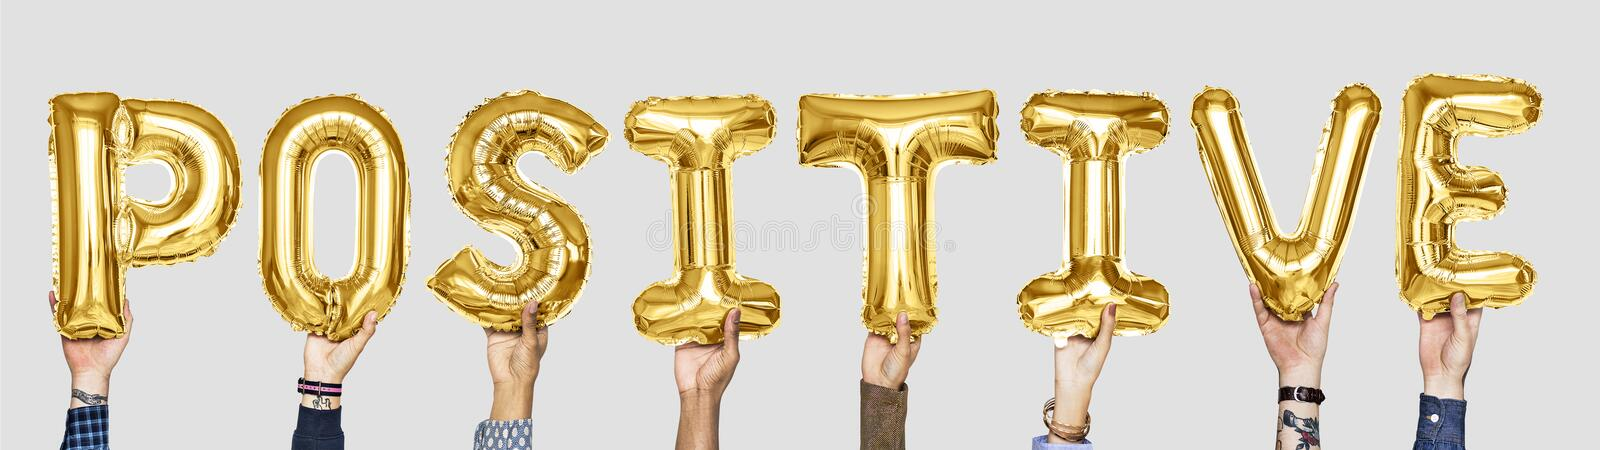 Yellow gold alphabet balloons forming the word positive royalty free stock images